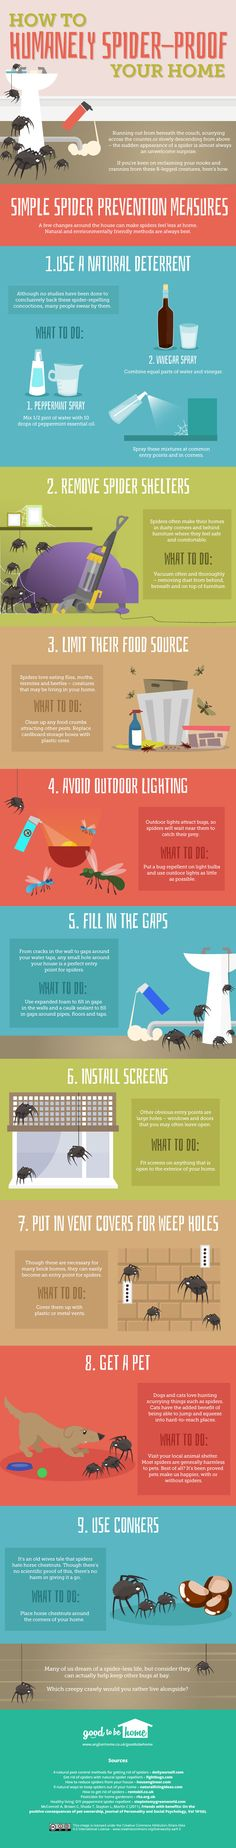 How to get rid of spiders from your home [infographic]   ecogreenlove ••• Brought to you by Anglian Home'sGood to be Home